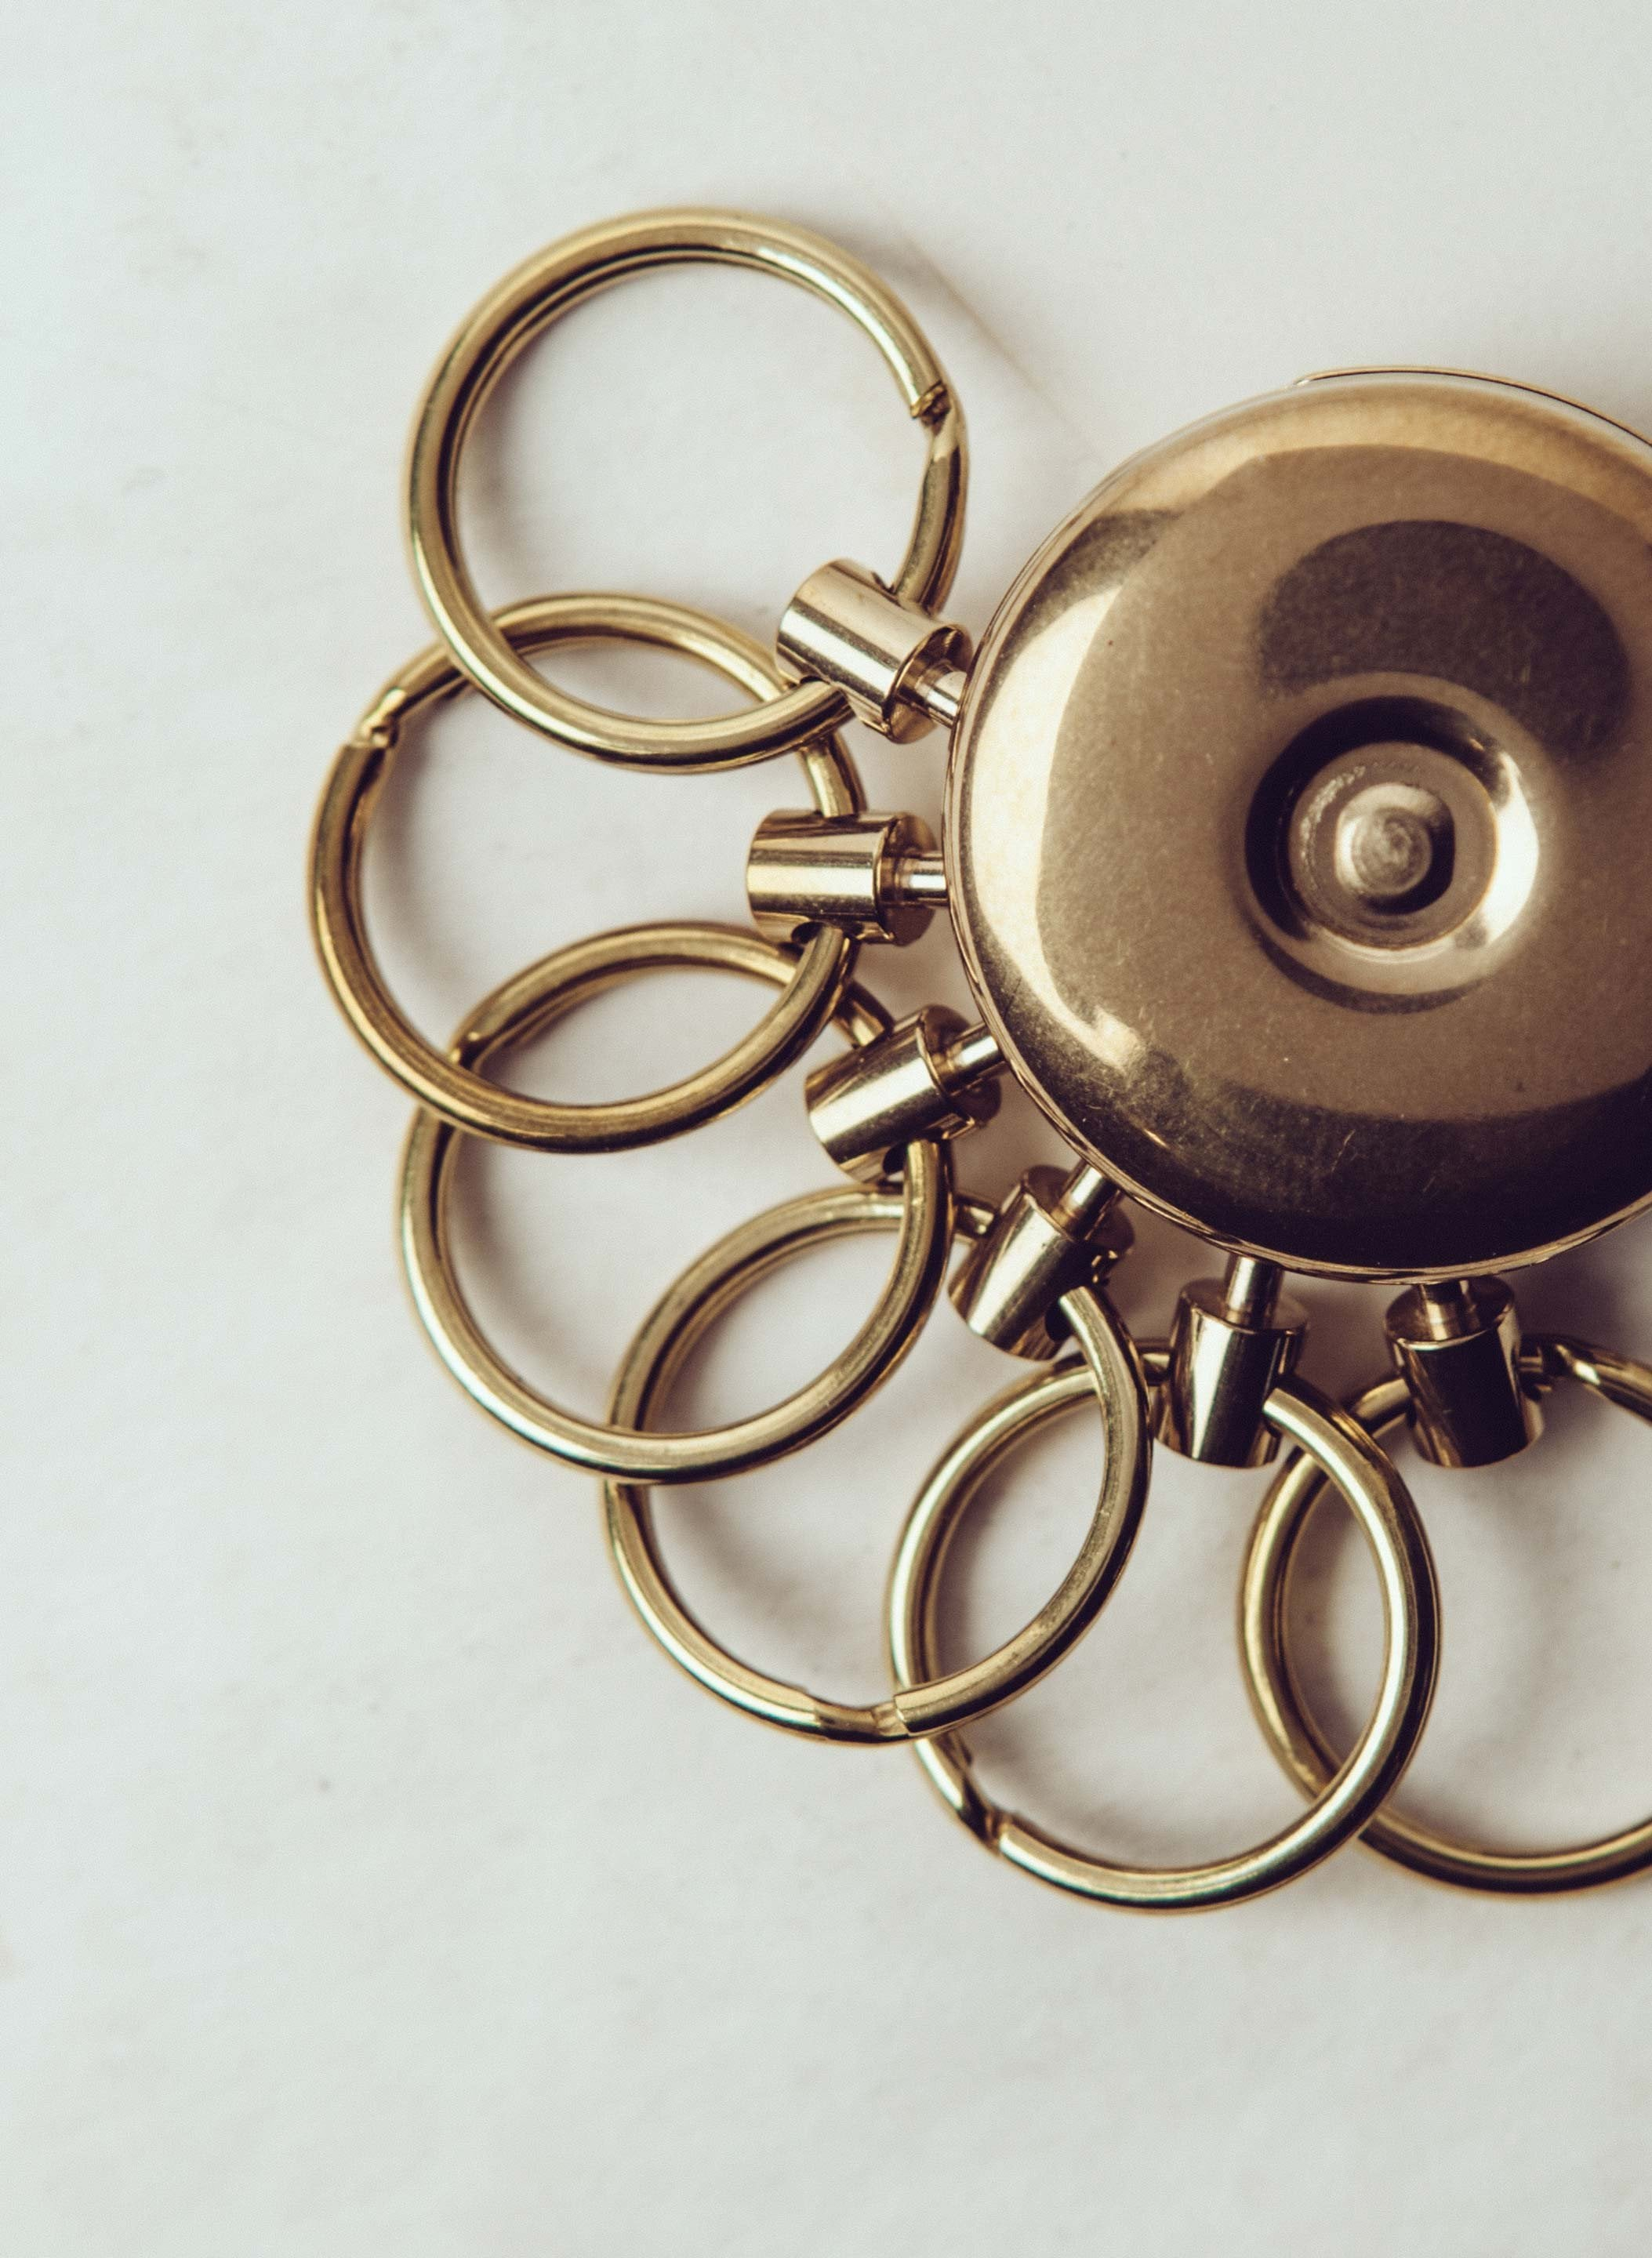 imogene + willie - japanese brass key holder